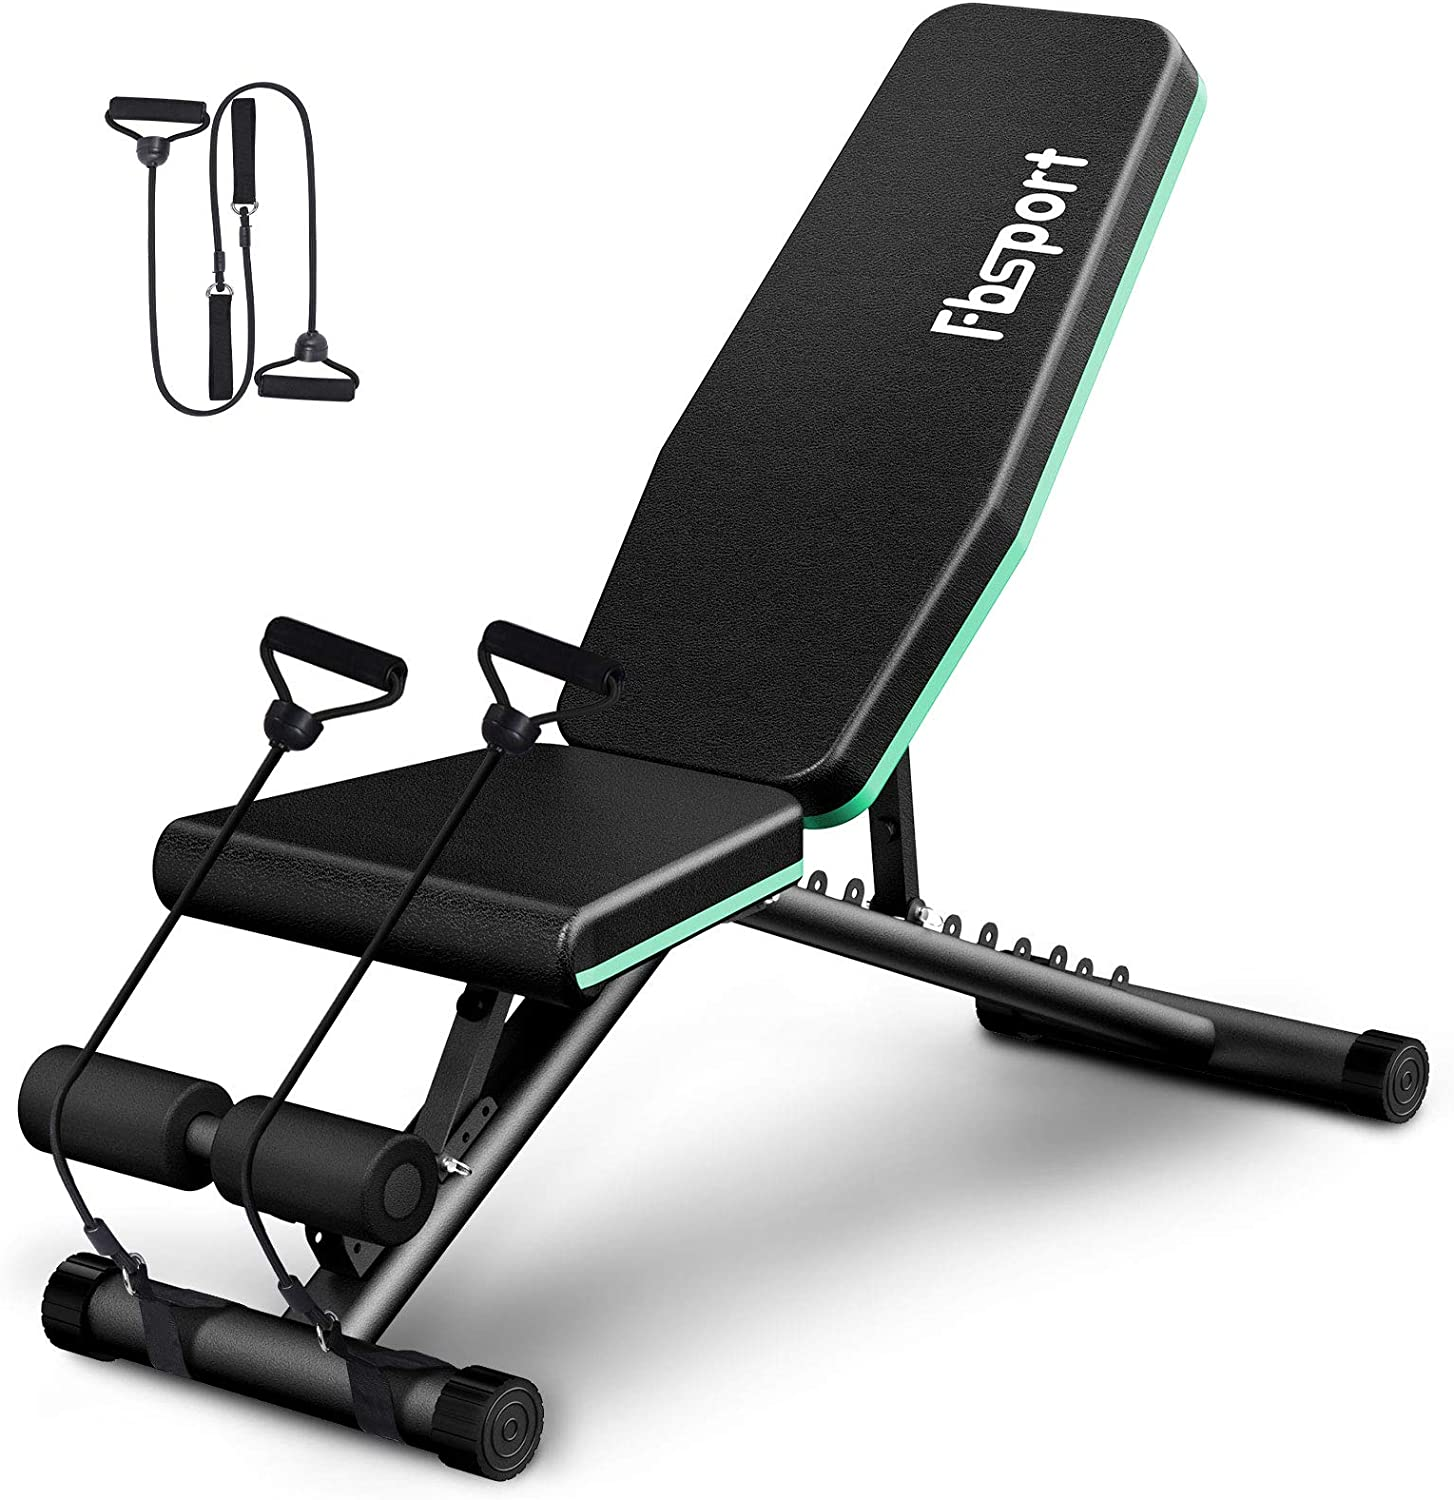 Multifunction Adjustable Weight Bench Foldable Incline Benches Dumbbell Sit-ups Fitness Equipment Training Anti-Slip Install for Indoor Gym Dedicated etcA